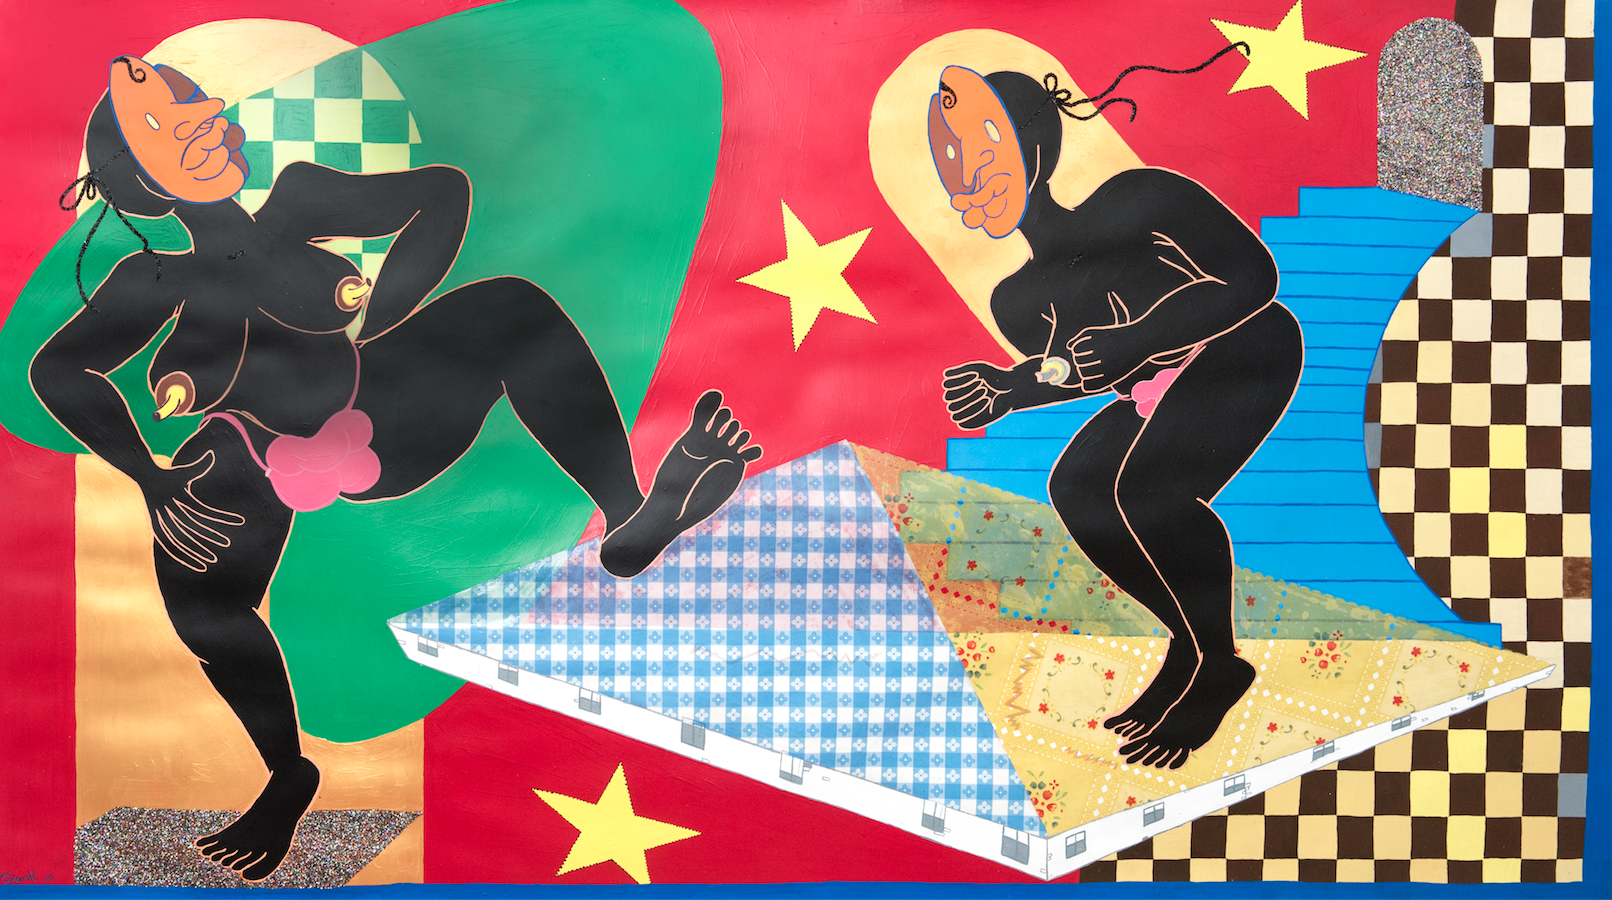 Dancing with the Stars / 2017 / Acrylic, glitter, pastel, and vinyl collage on paper / 42 x 77 inches